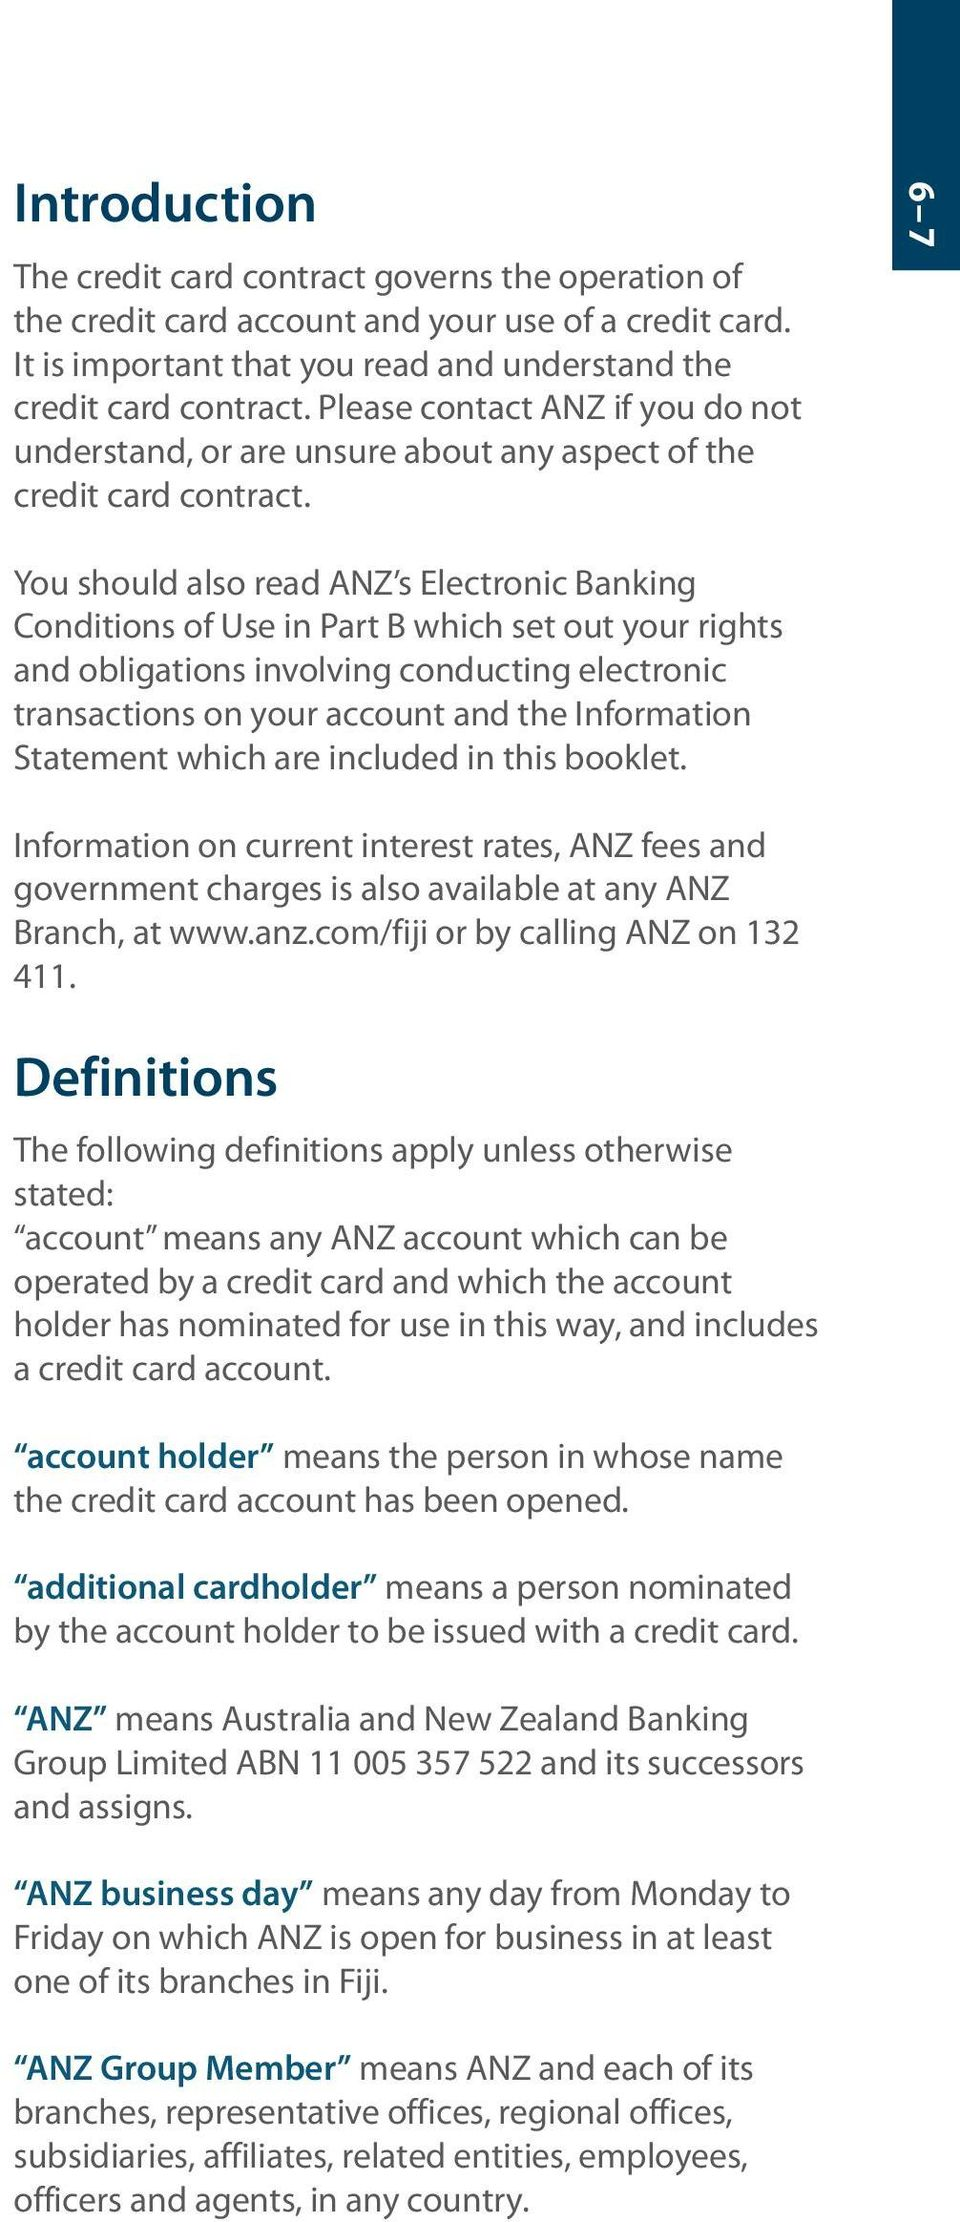 6 7 You should also read ANZ s Electronic Banking Conditions of Use in Part B which set out your rights and obligations involving conducting electronic transactions on your account and the